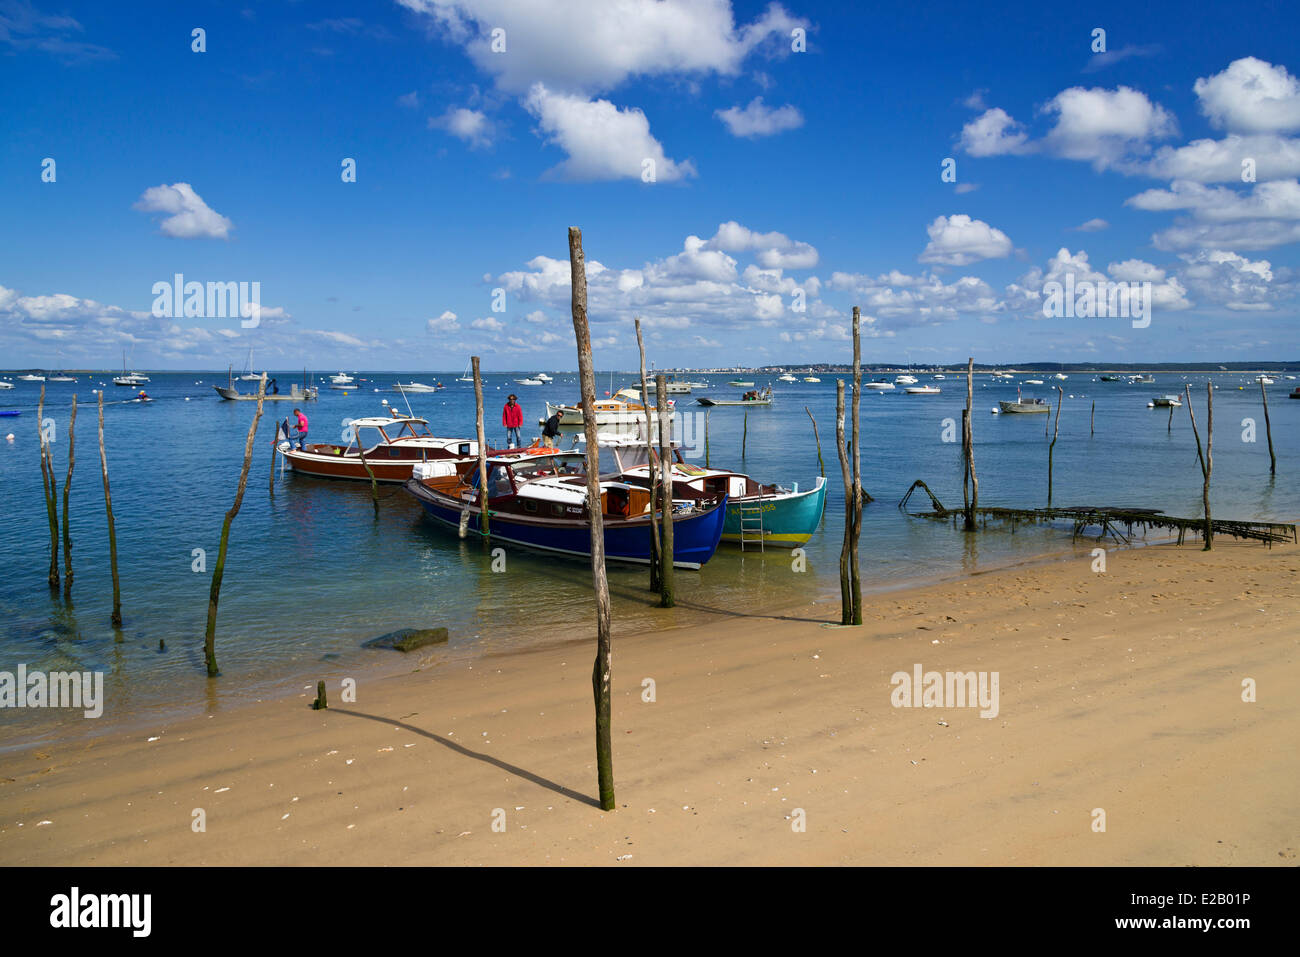 France, Gironde, Arcachon Bay, L'Herbe, Wooden Boat type Arcachon attached to stakes on a beach at low tide Stock Photo